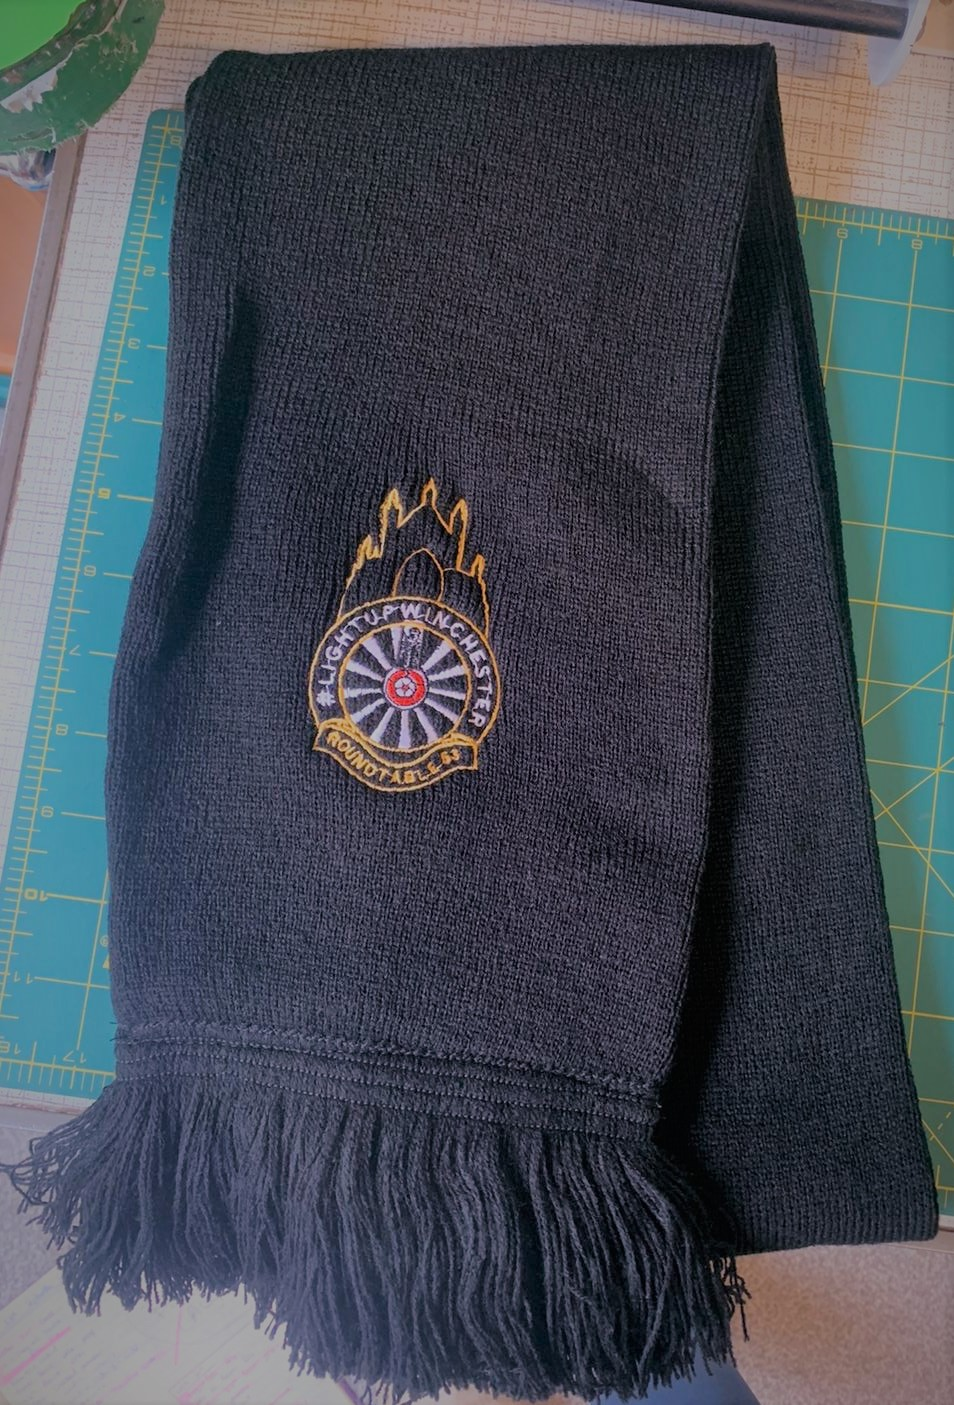 Winchester Round Table Scarf